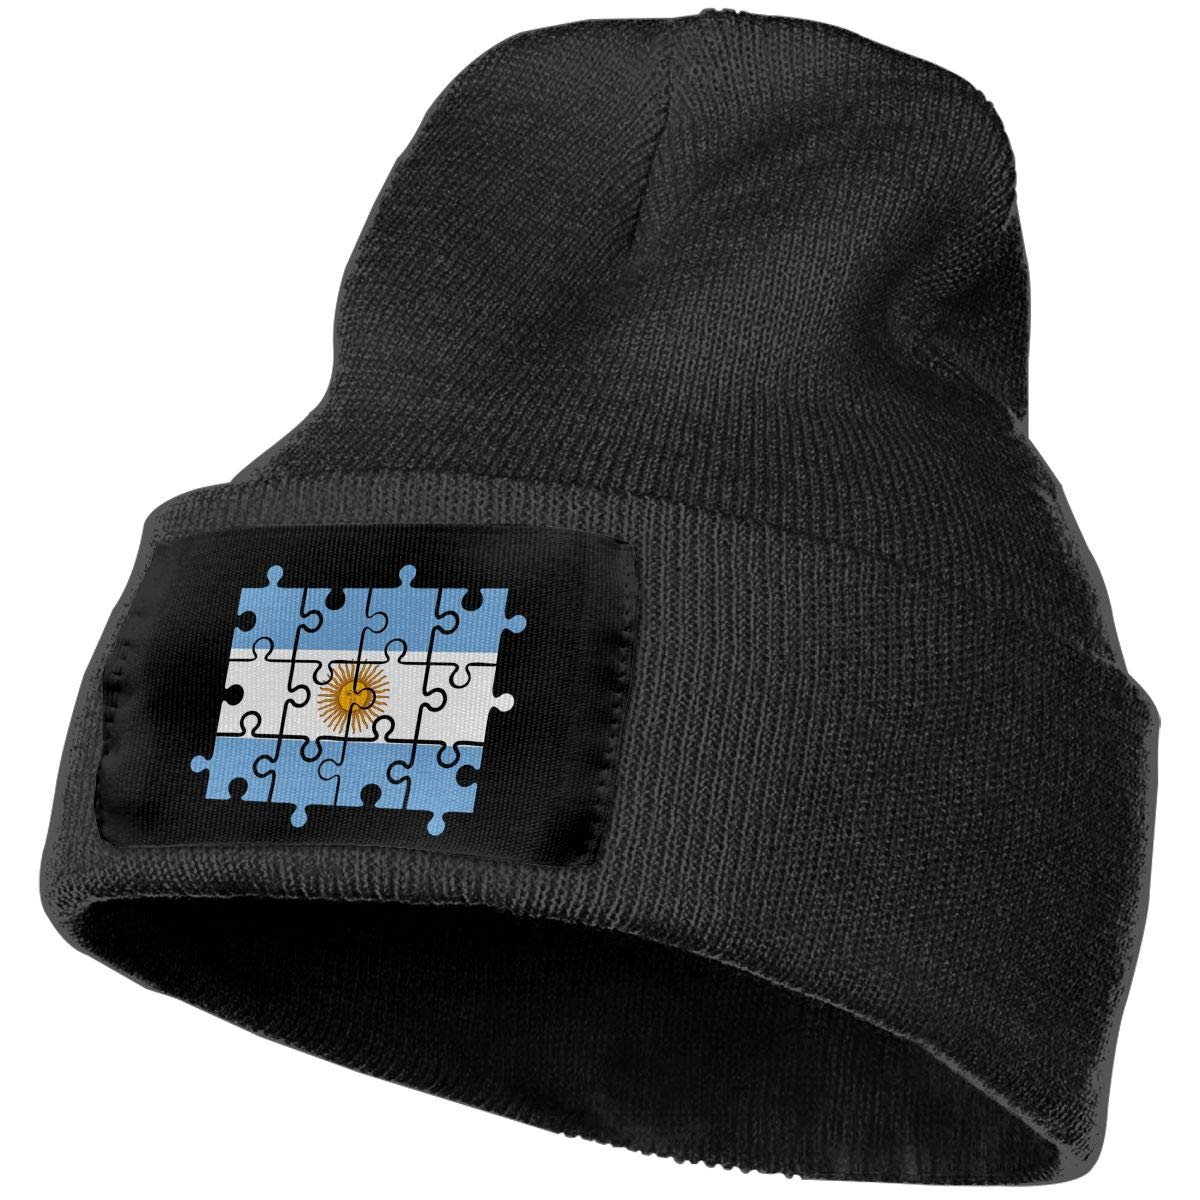 COLLJL-8 Men//Women Argentina Flag Puzzle Outdoor Stretch Knit Beanies Hat Soft Winter Knit Caps